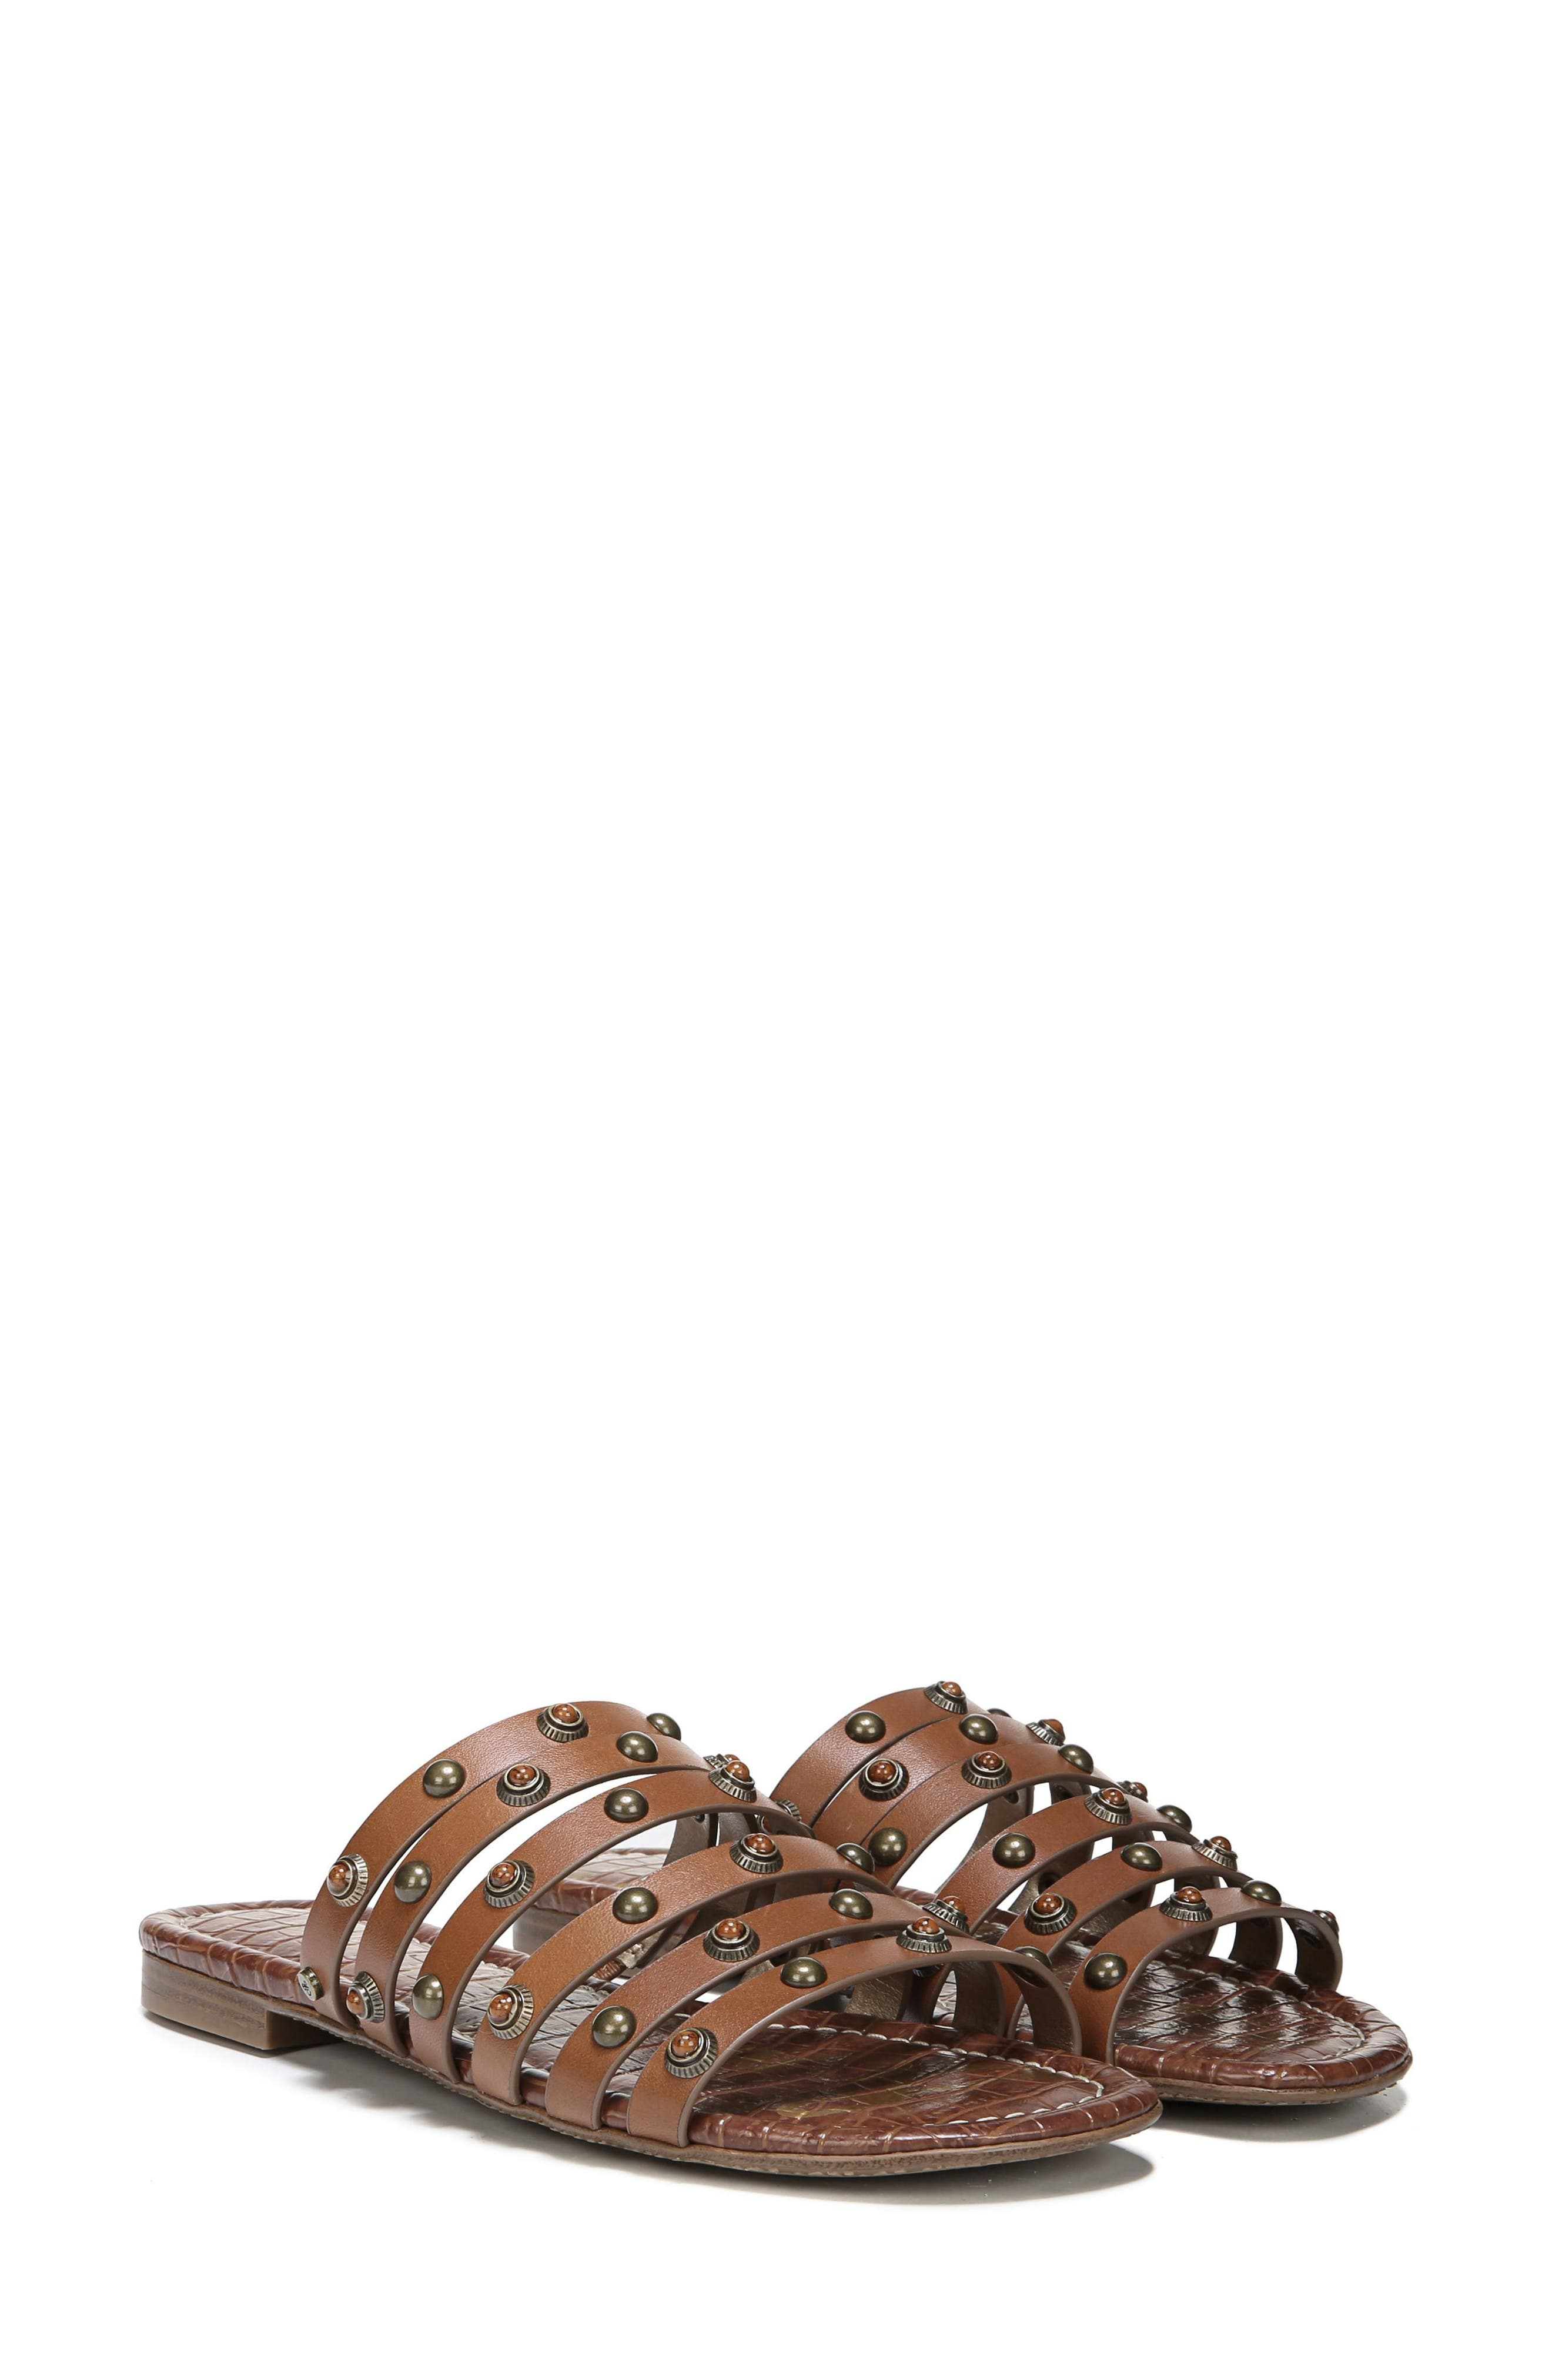 Brea Studded Slide Sandal,                             Alternate thumbnail 24, color,